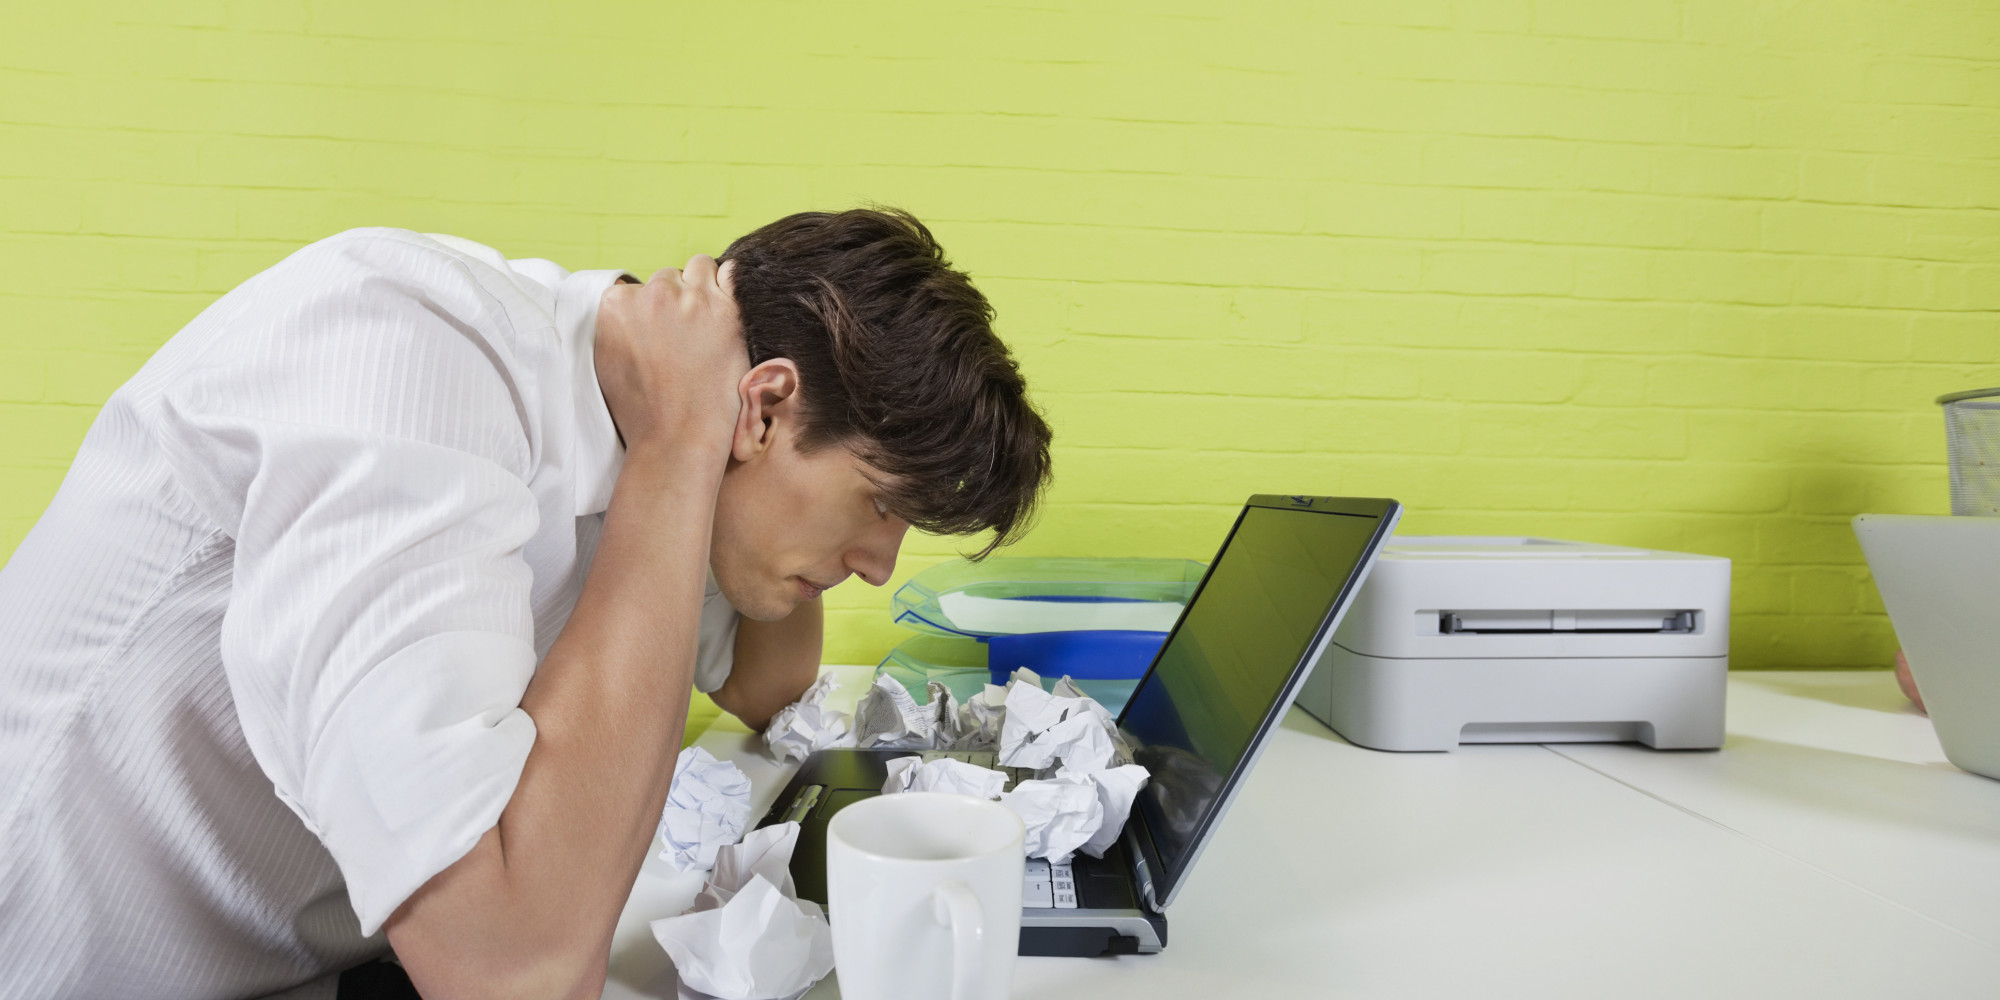 5 ways hating your job can ruin your health according to science 5 ways hating your job can ruin your health according to science the huffington post